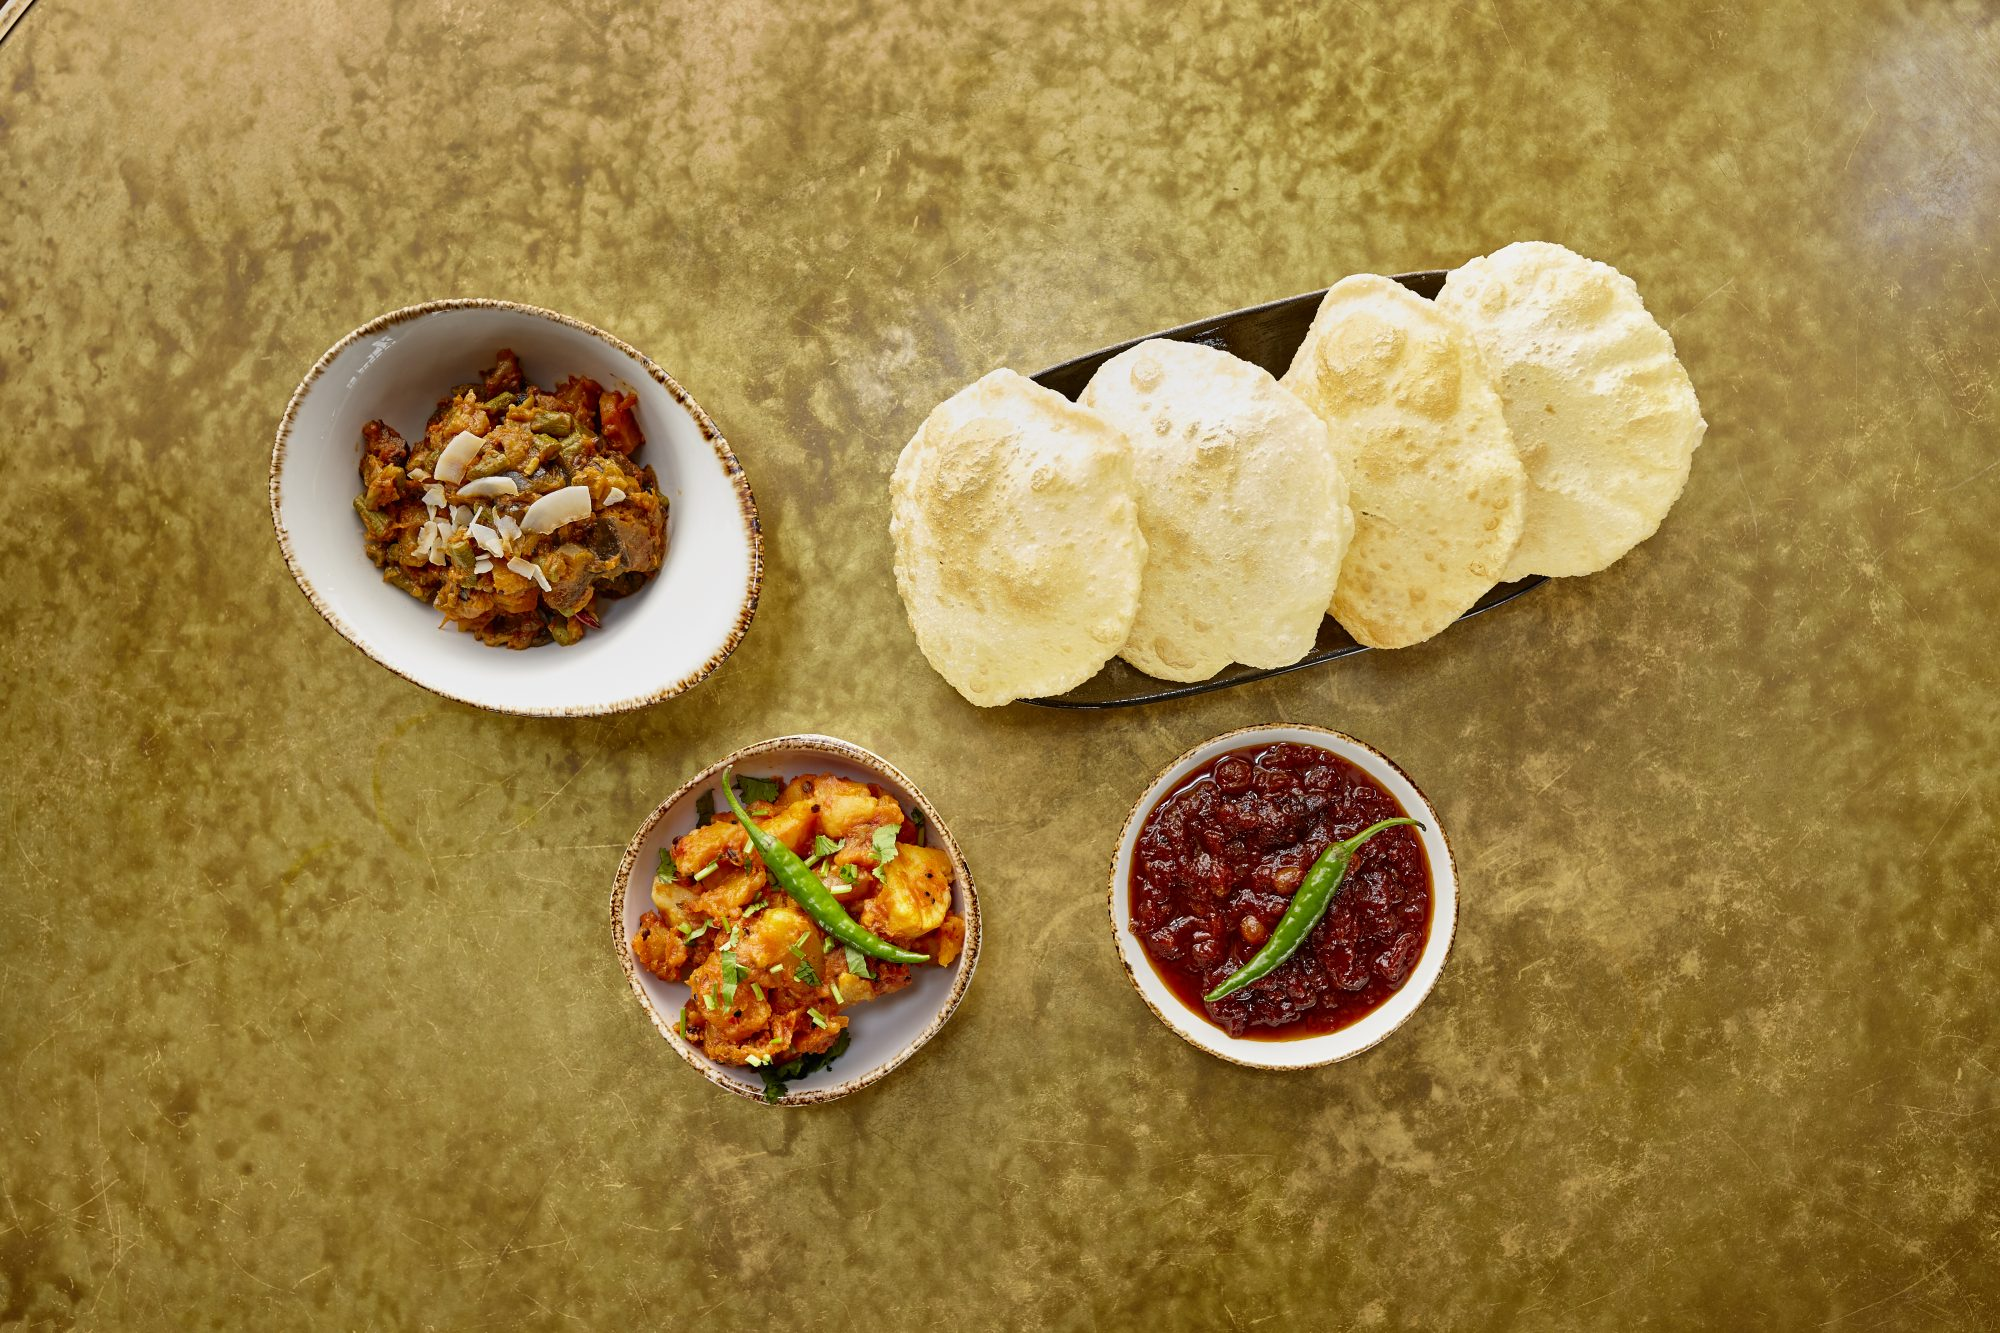 London's Cult-Favorite Indian Restaurant Is a Love Letter to Second Daughters